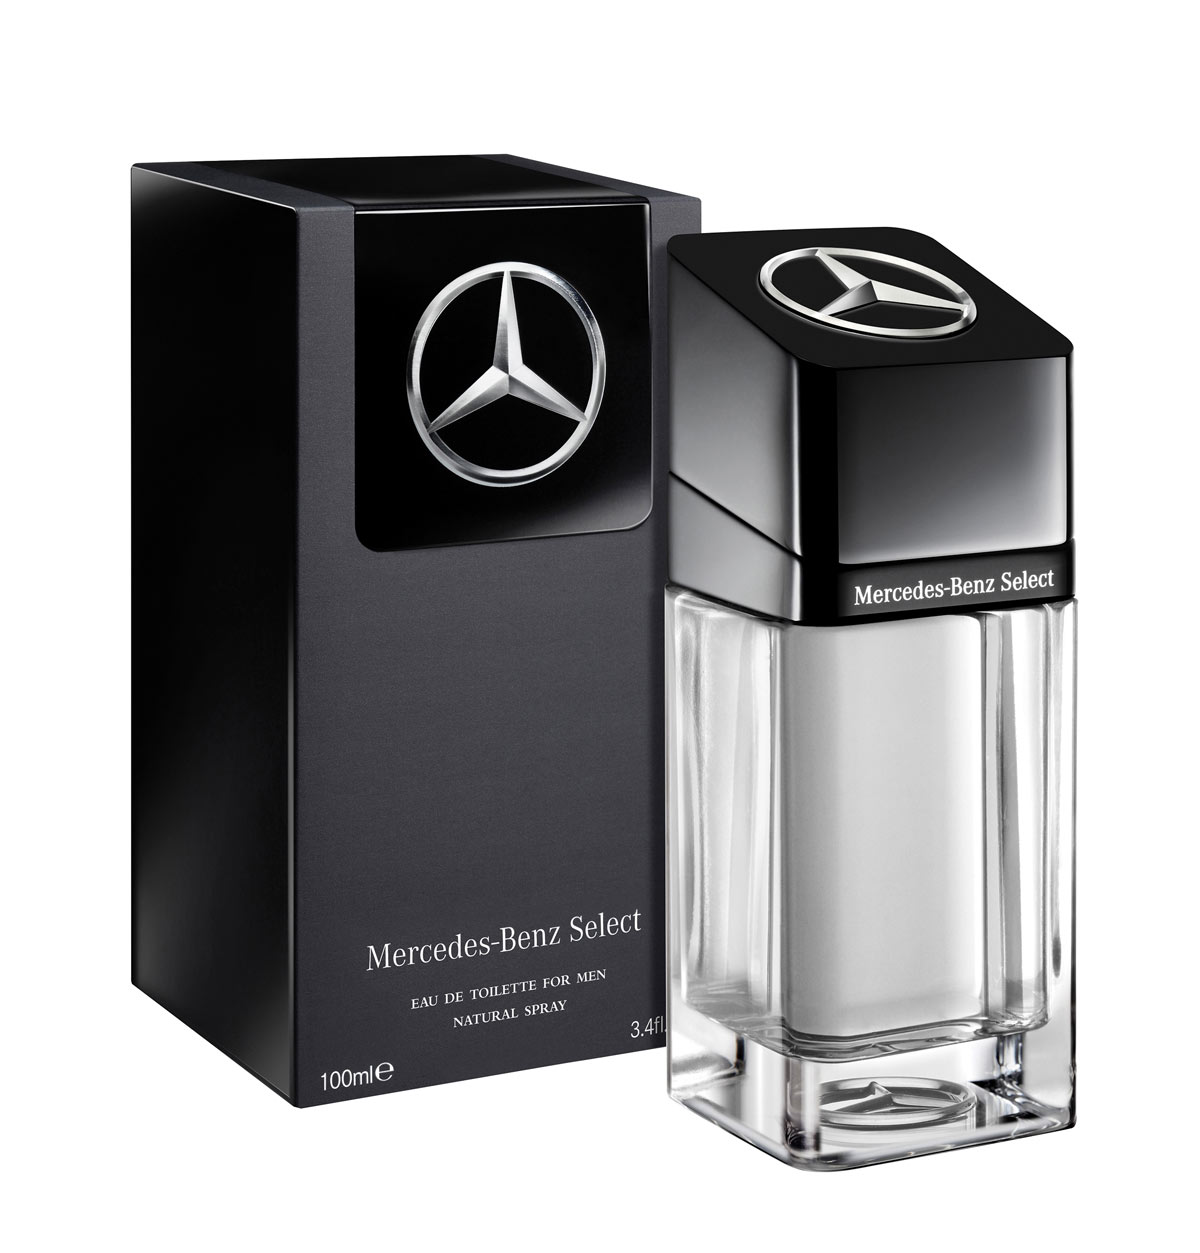 mercedes benz select mercedes benz cologne a new. Black Bedroom Furniture Sets. Home Design Ideas